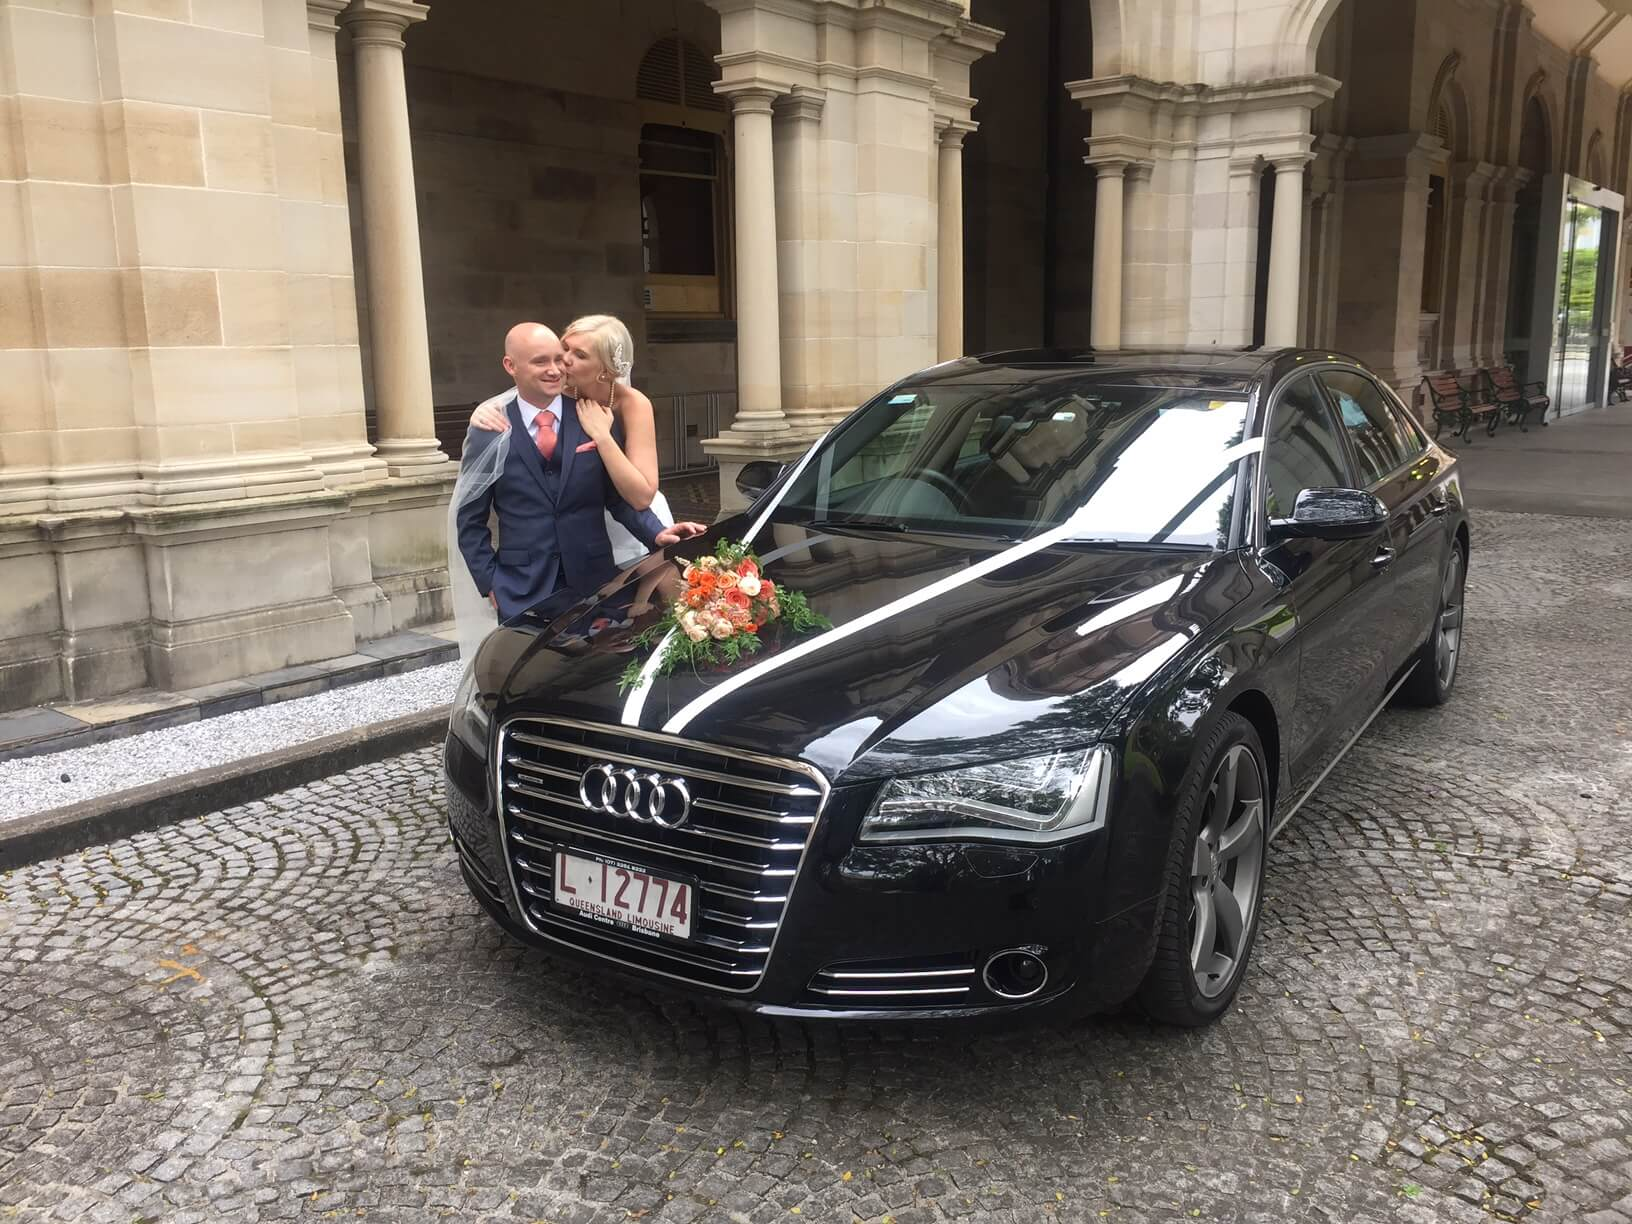 milimo - Audi A8L Slideshow - Chauffeured Car Service